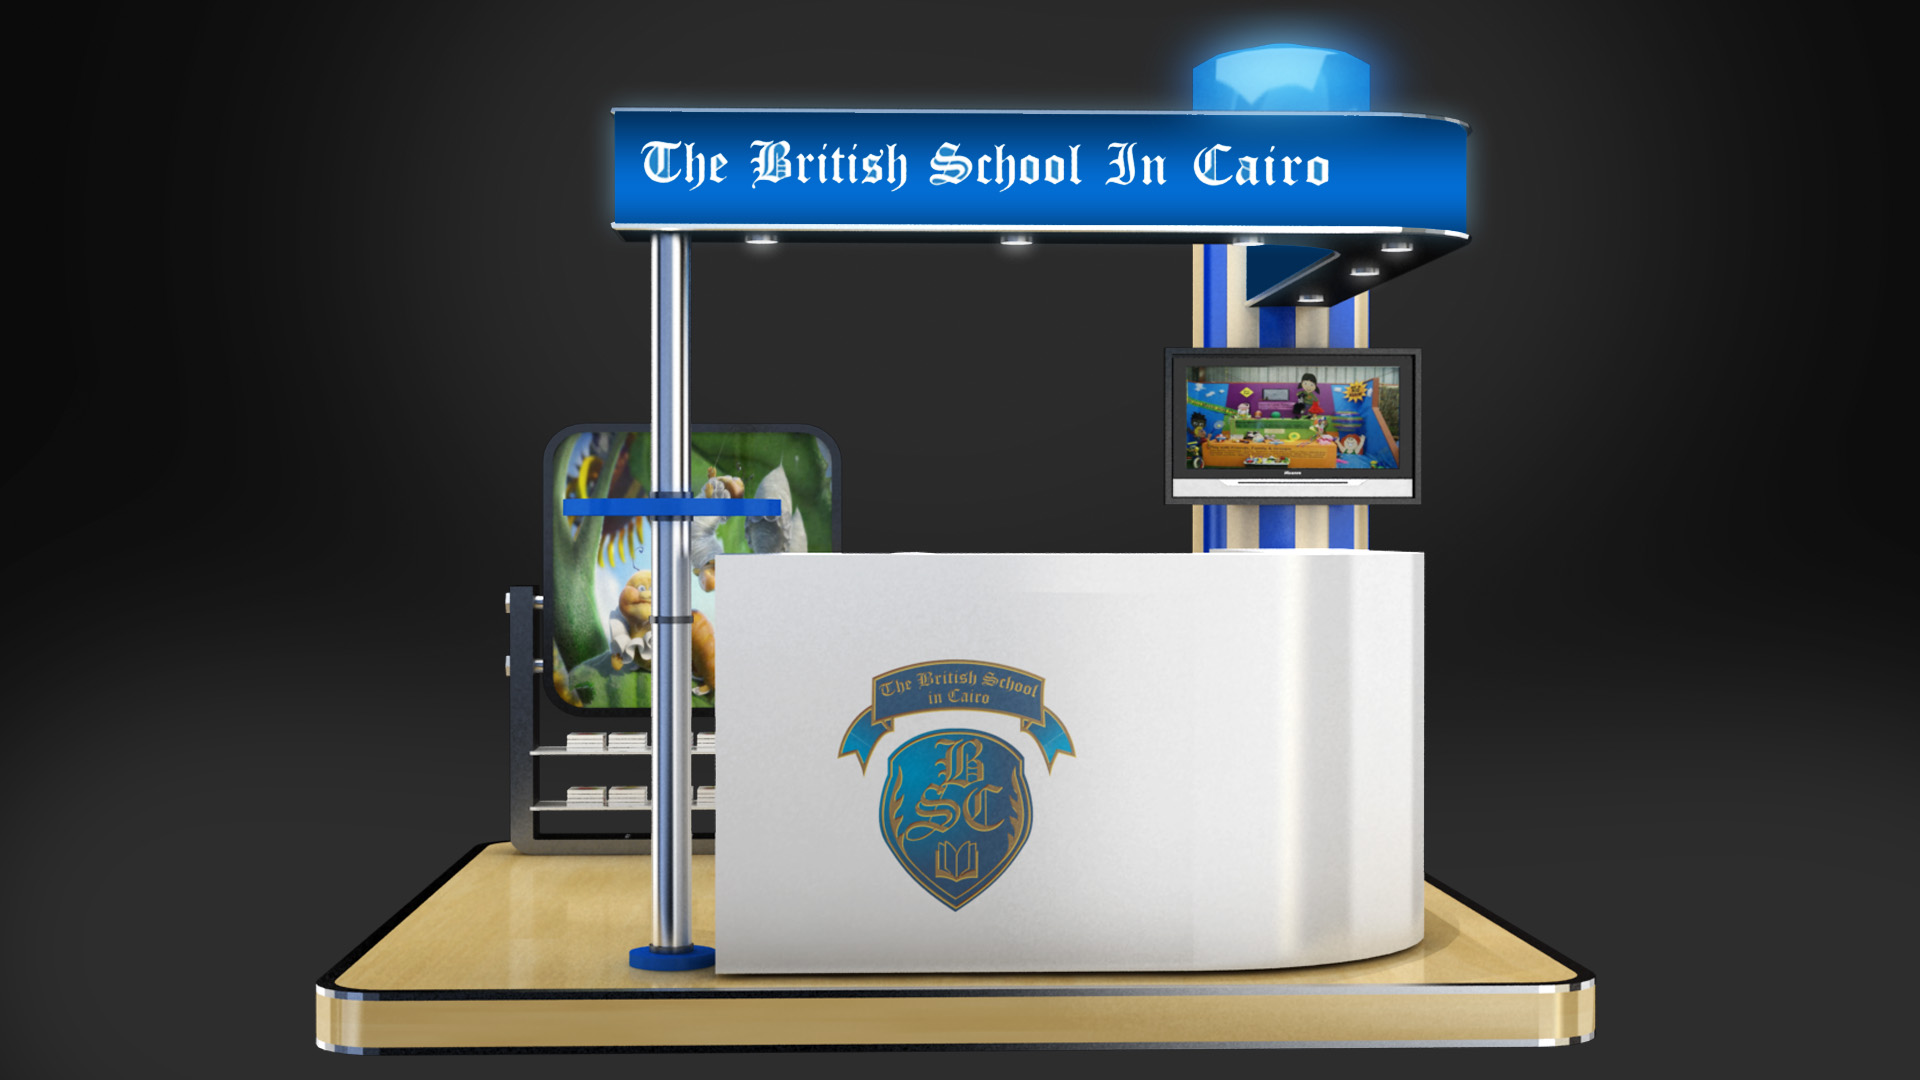 bsc school booth design by moohhamm - Photo Booth Design Ideas